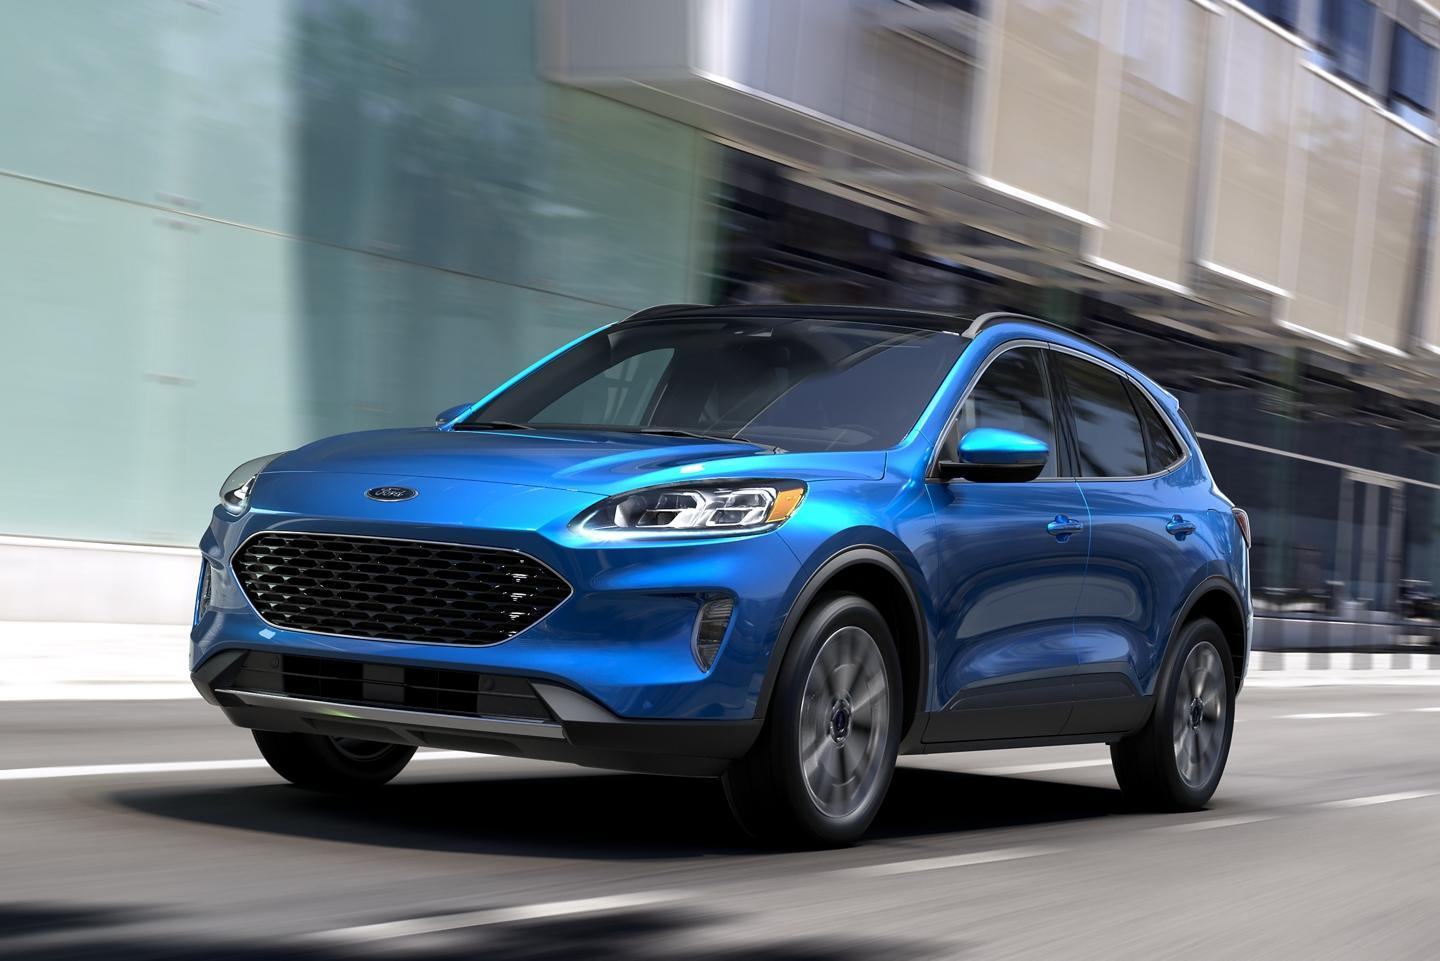 Ford 2020 Escape image